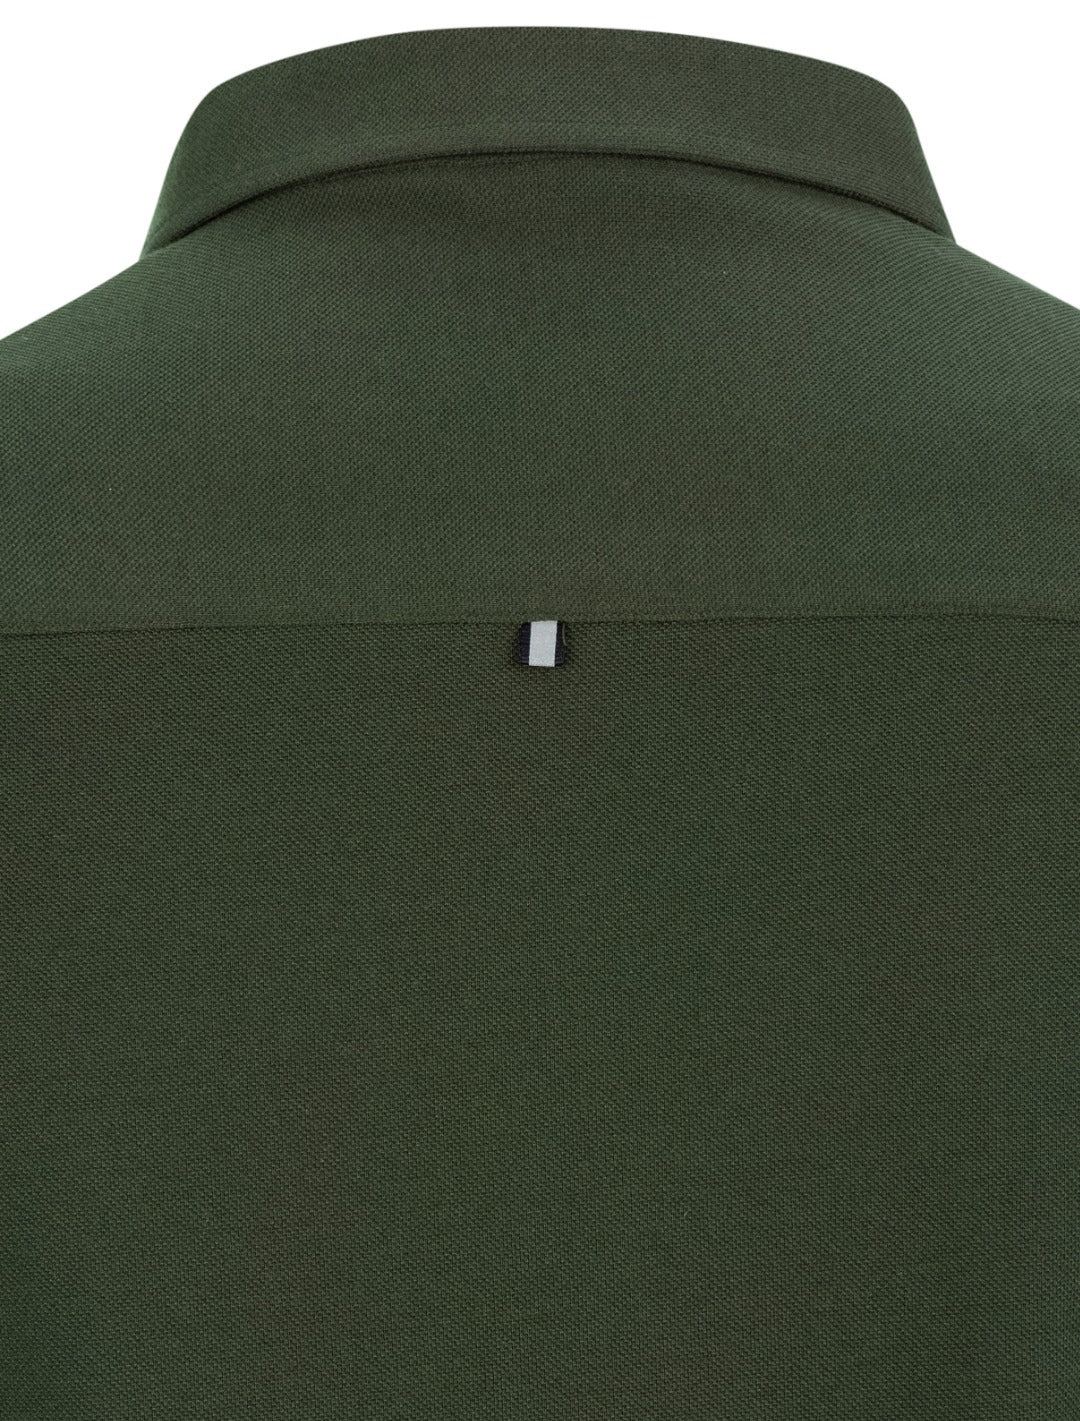 Olive Performance Knit Long Sleeve Shirt